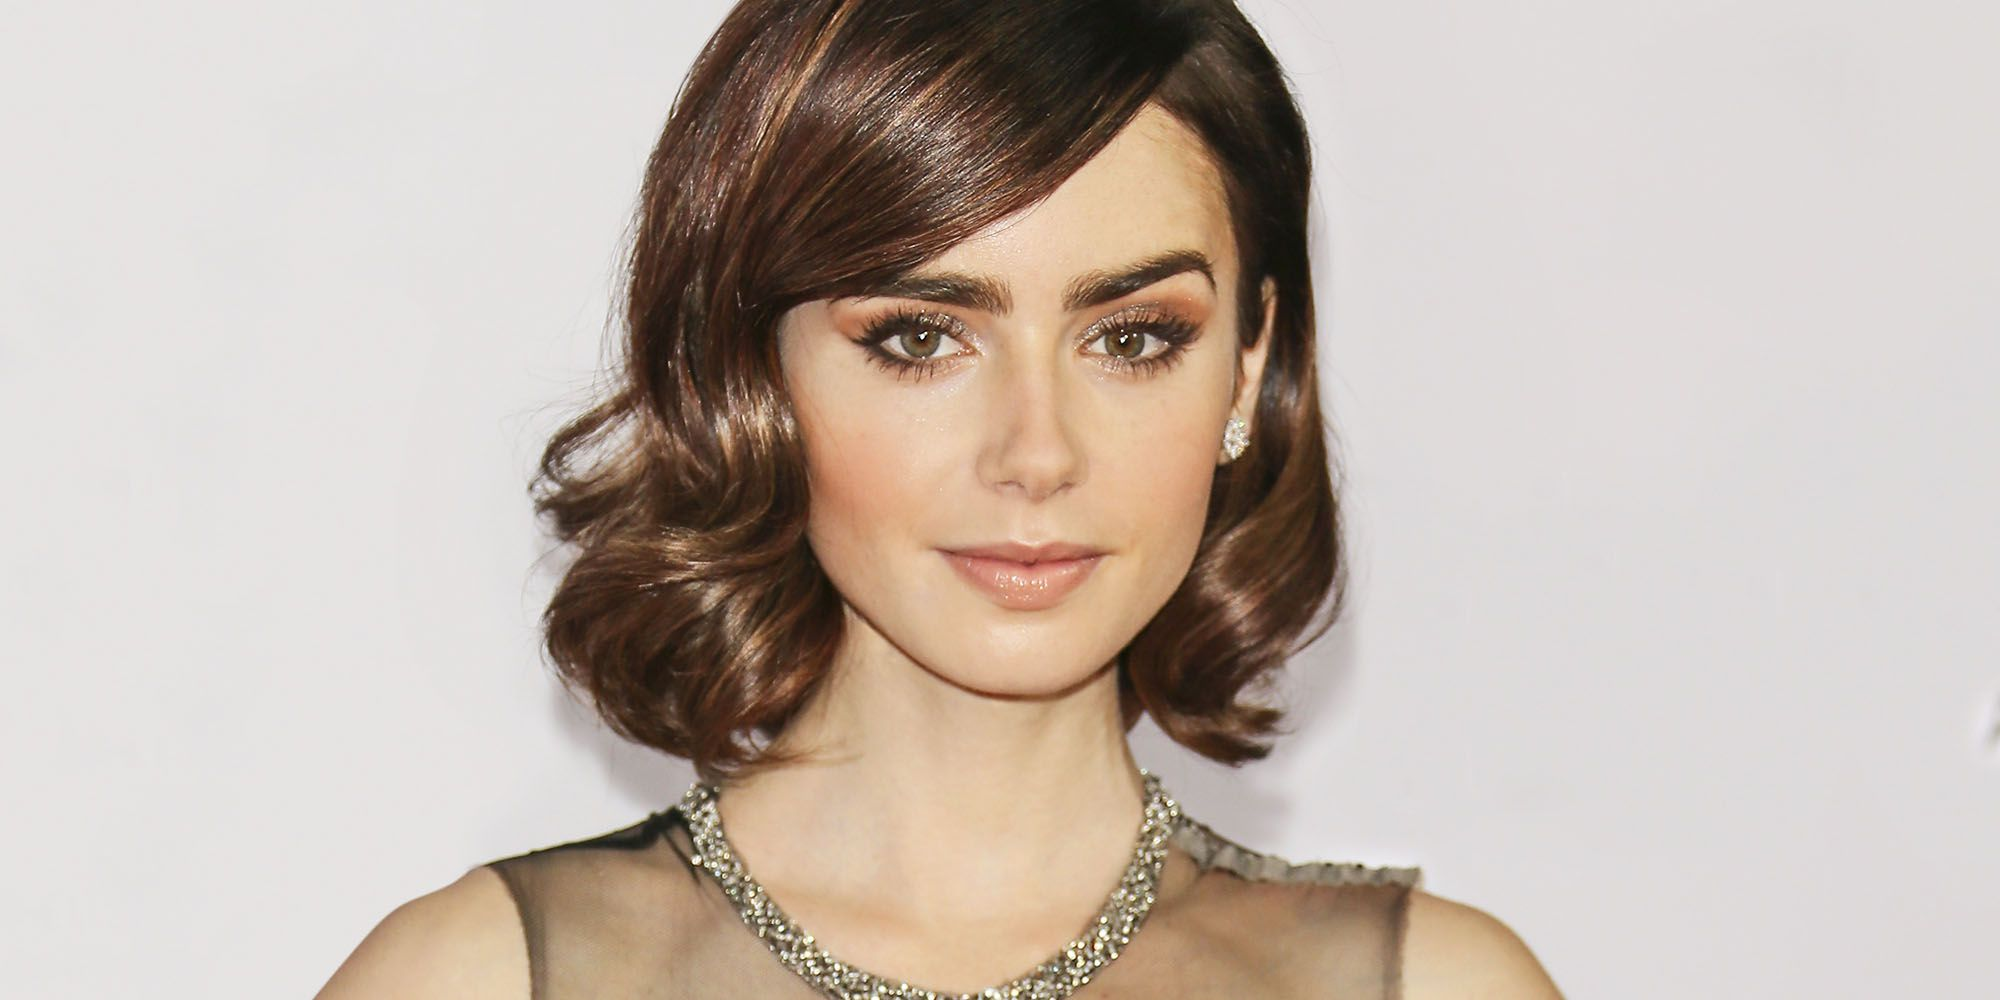 Lily Collins wallpaper - Lily Collins Net Worth, Biography, Family, Movies, Boyfriends, Pictures&Wallpapers